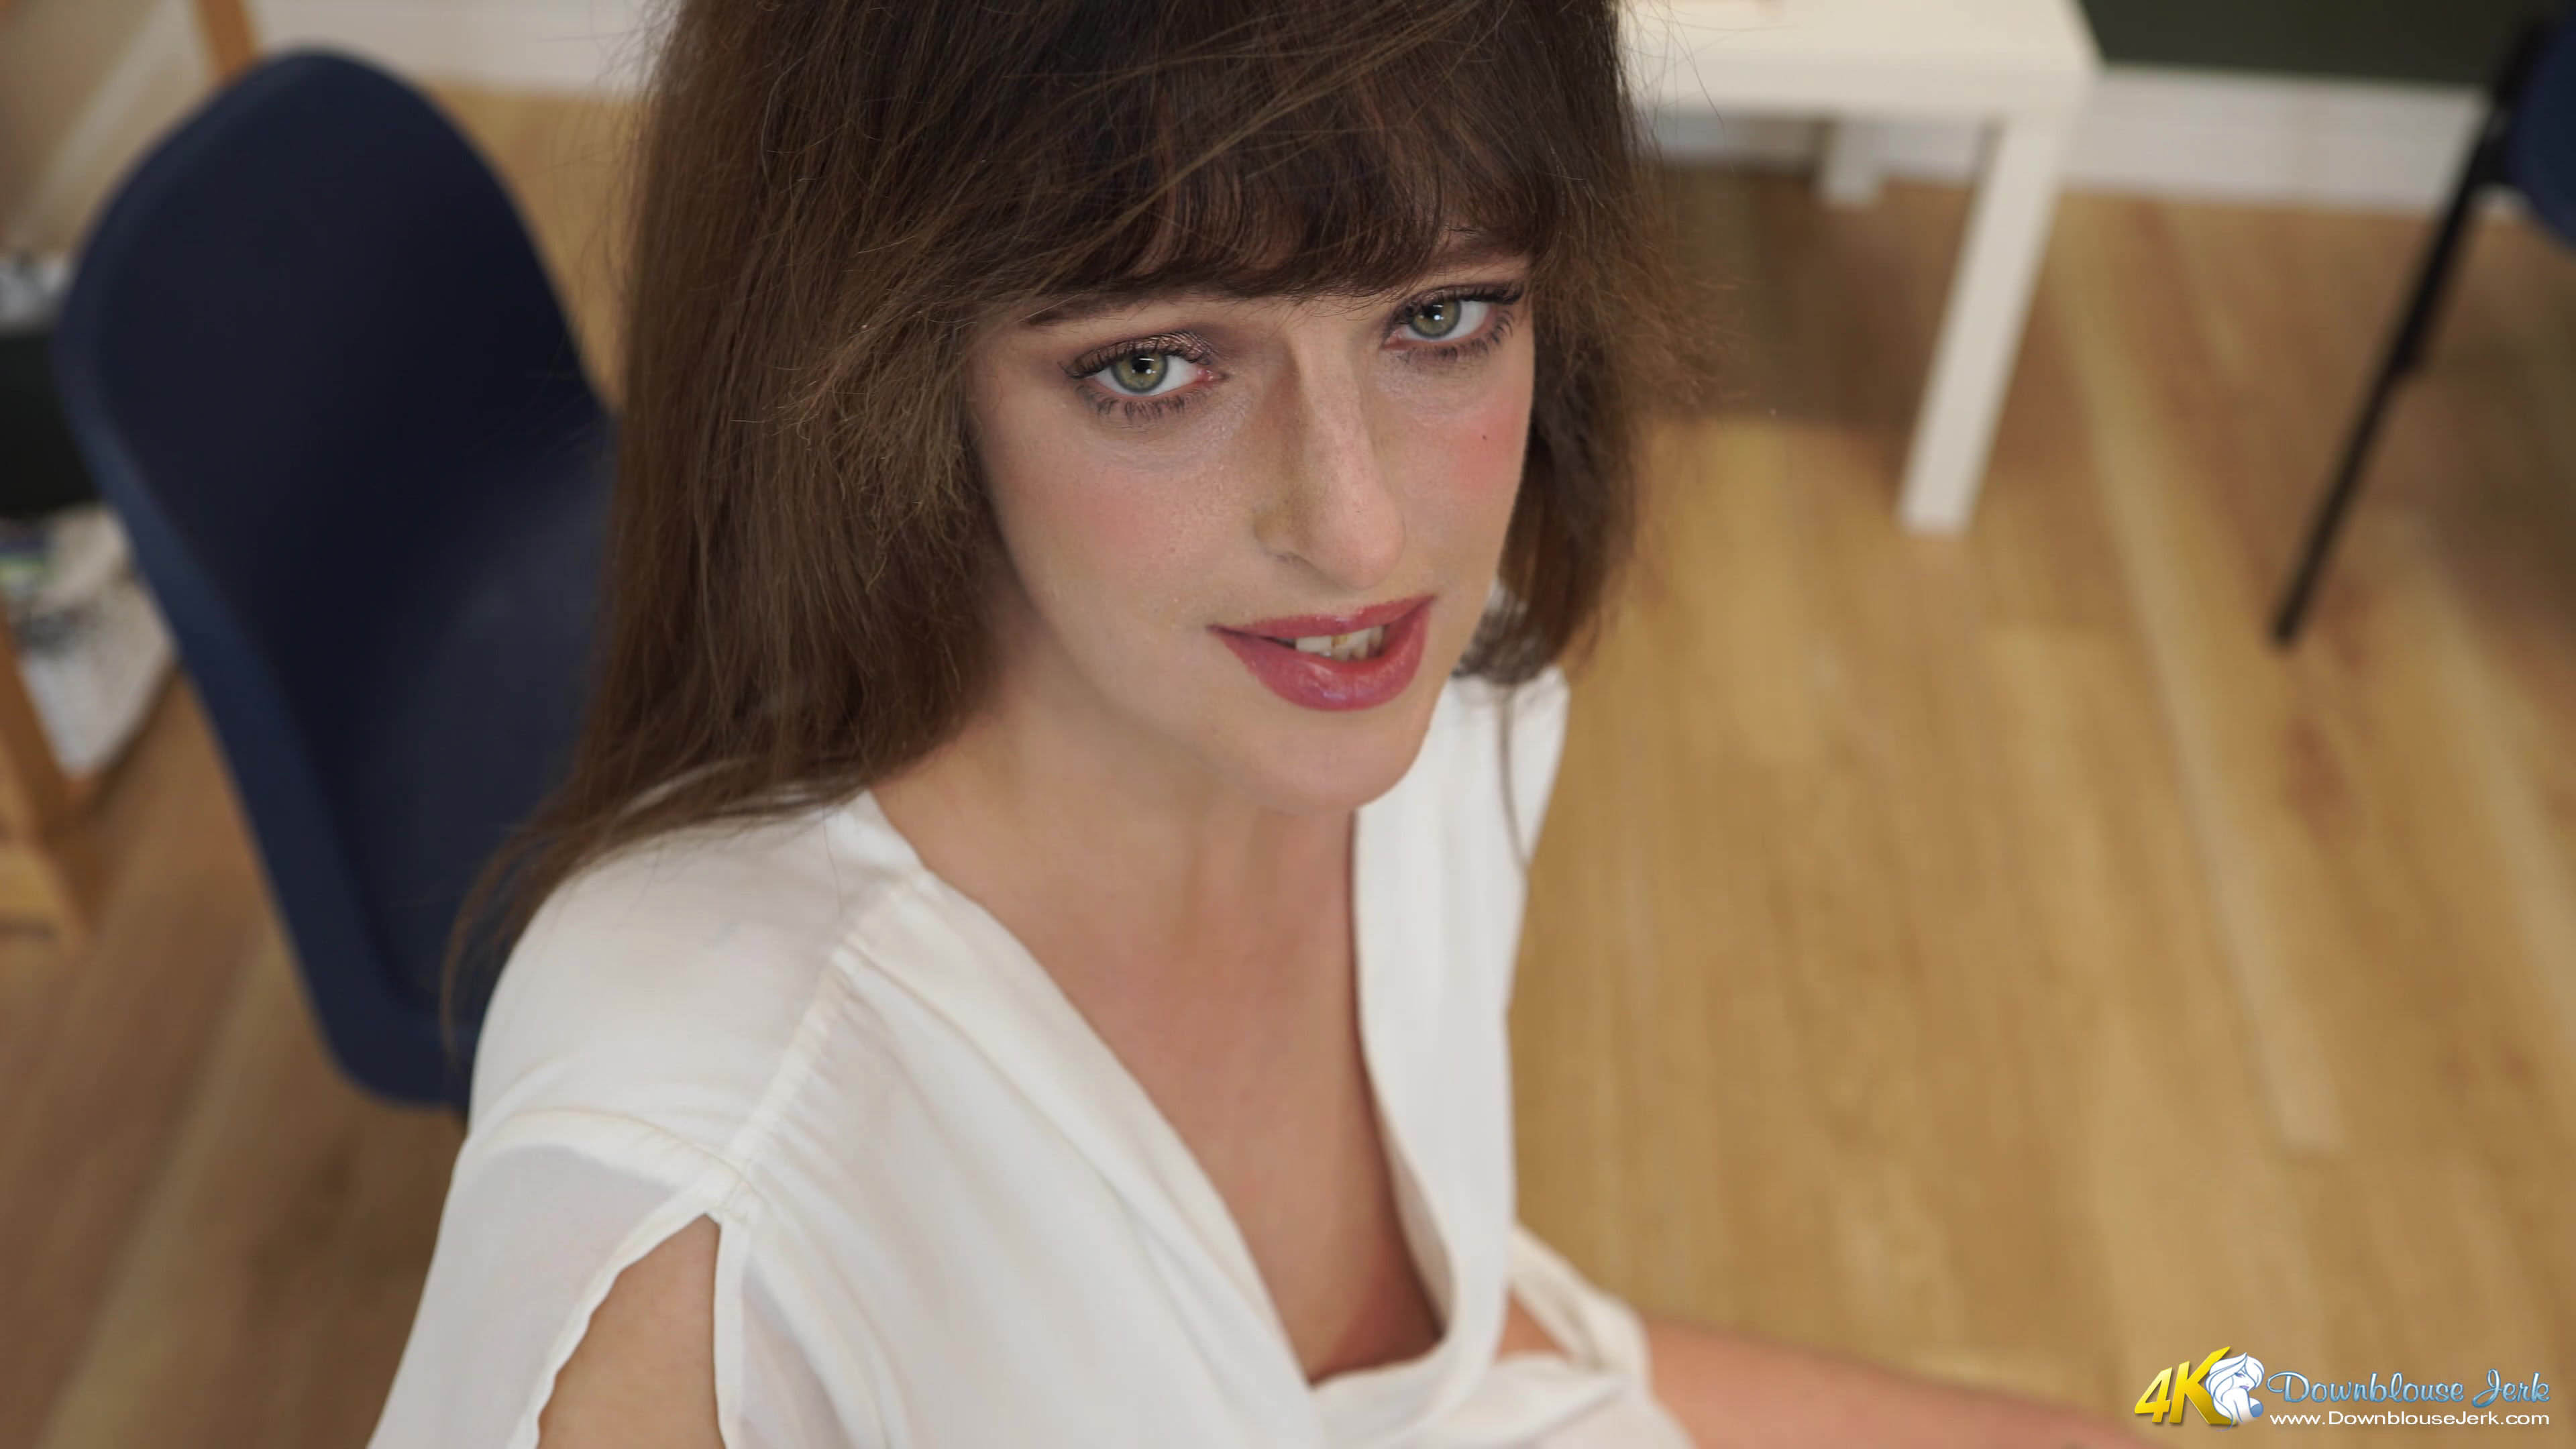 lascive british beauty with superb downblouse peek for a second #3